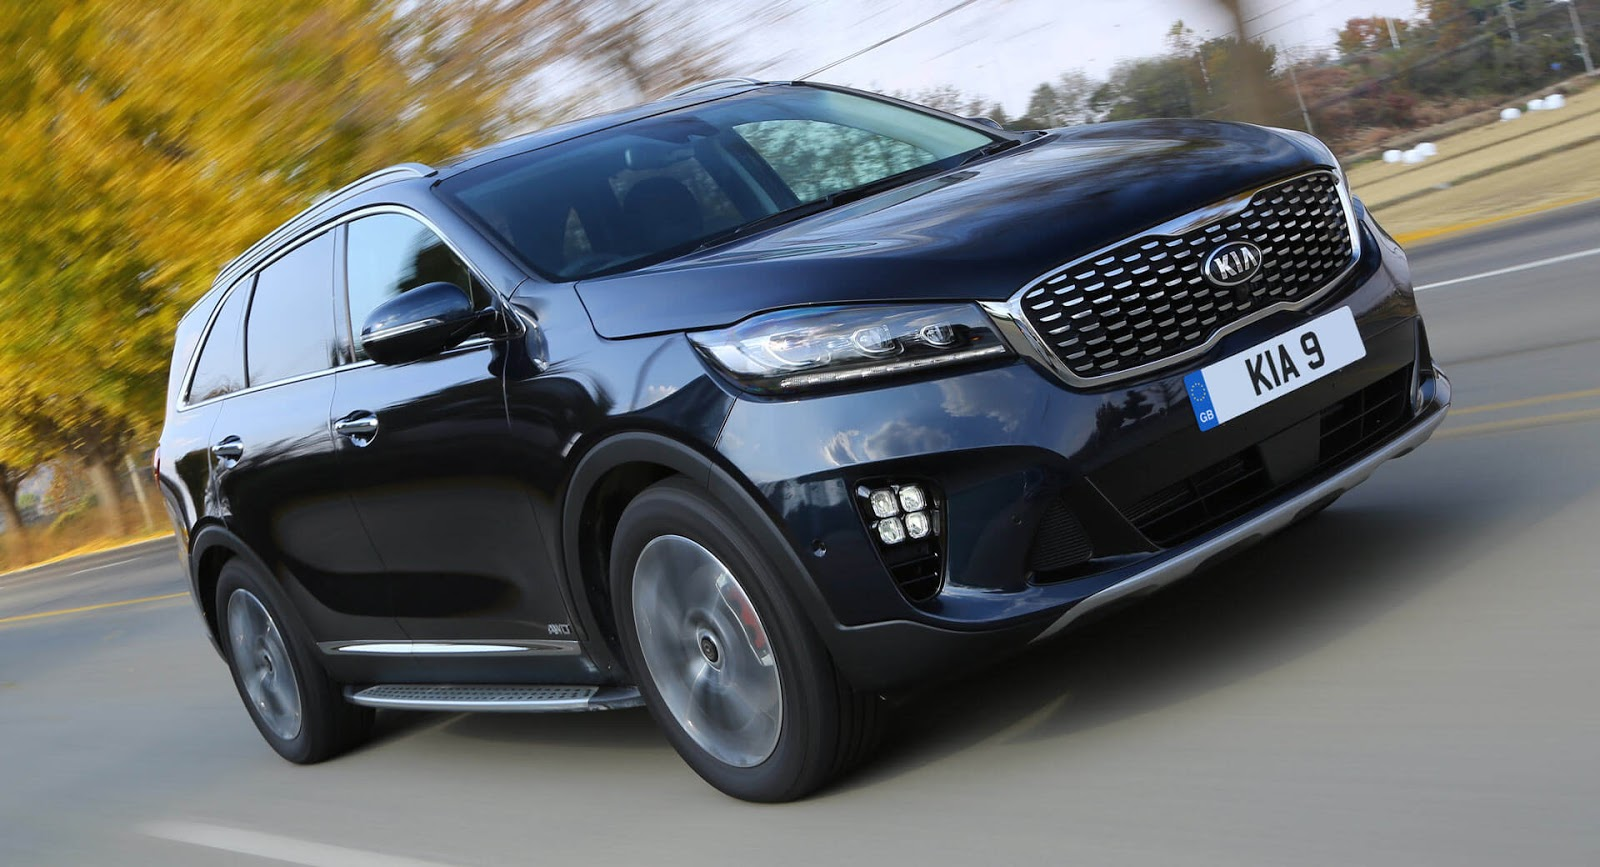 updated kia sorento arrives in the uk with 7 seat layout 28 995 starting price carscoops. Black Bedroom Furniture Sets. Home Design Ideas